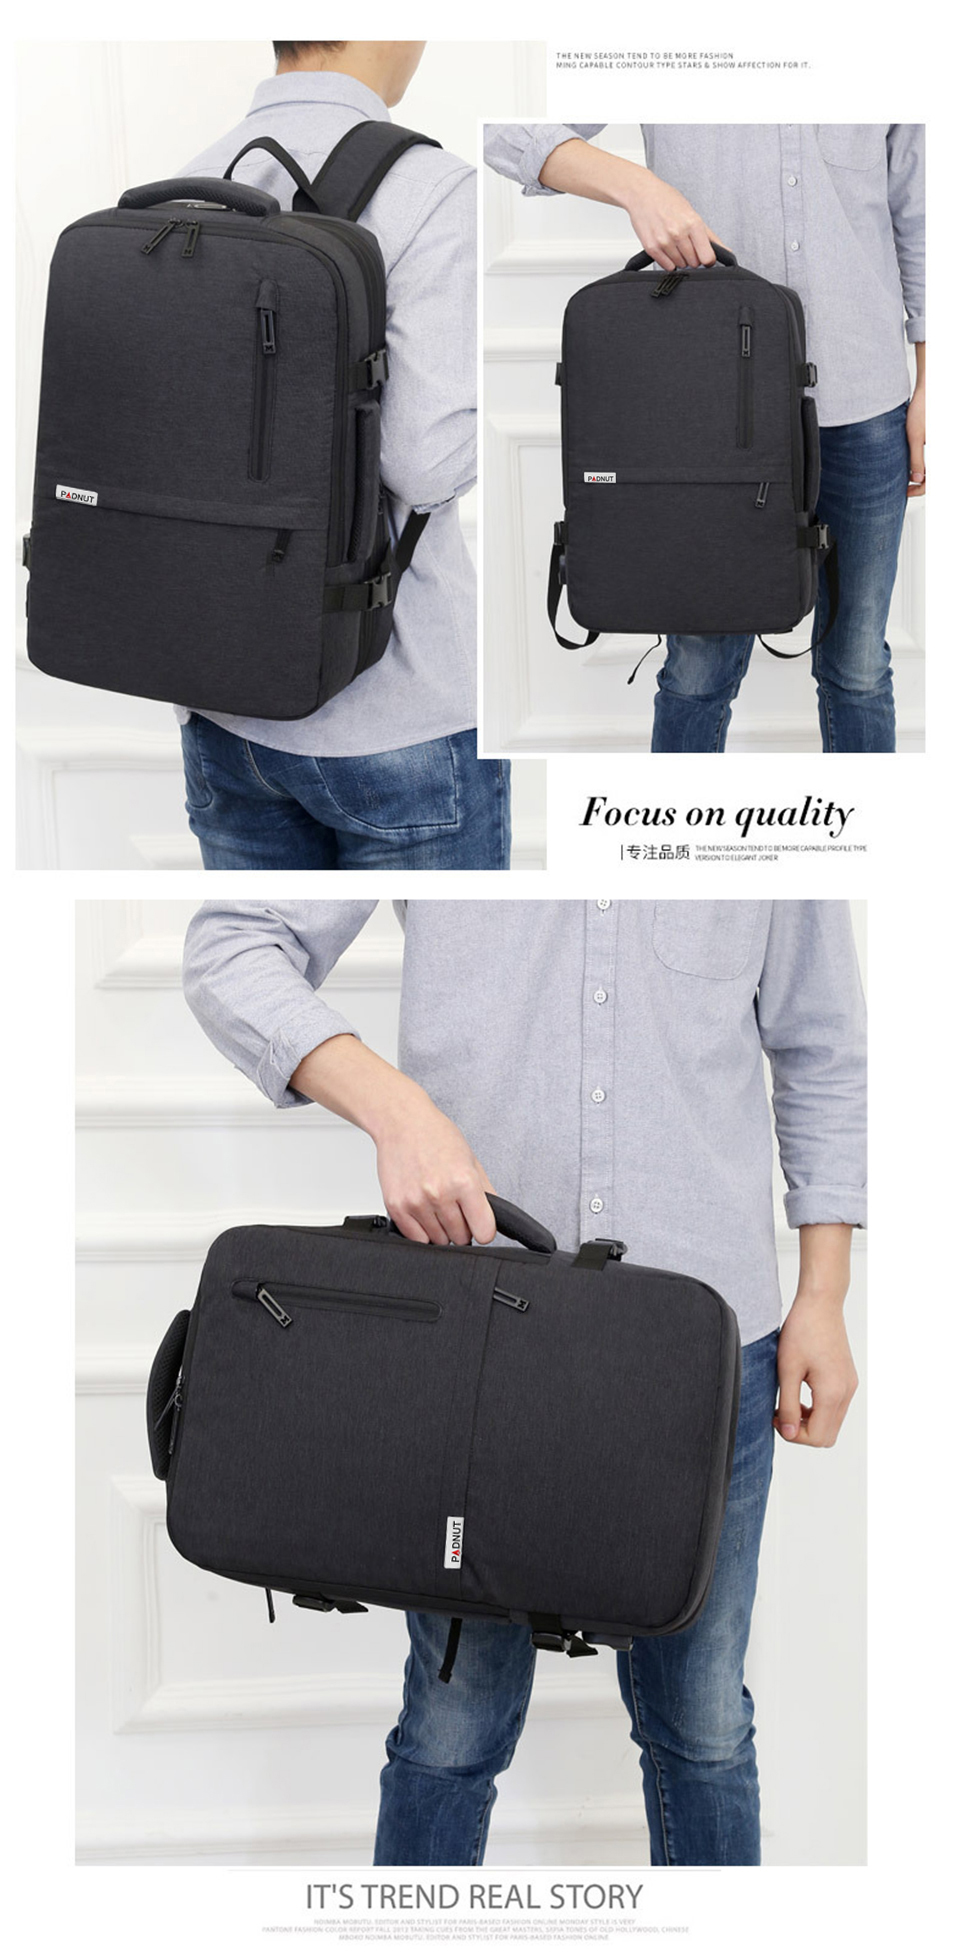 17''-Laptop-Backpack-Travel-Bag-Women-Men-Waterproof-75L-Large-Capacity-Bagpack-Anti-theft-Male-Female-Outdoor-15.6-Back-Packing_09_08